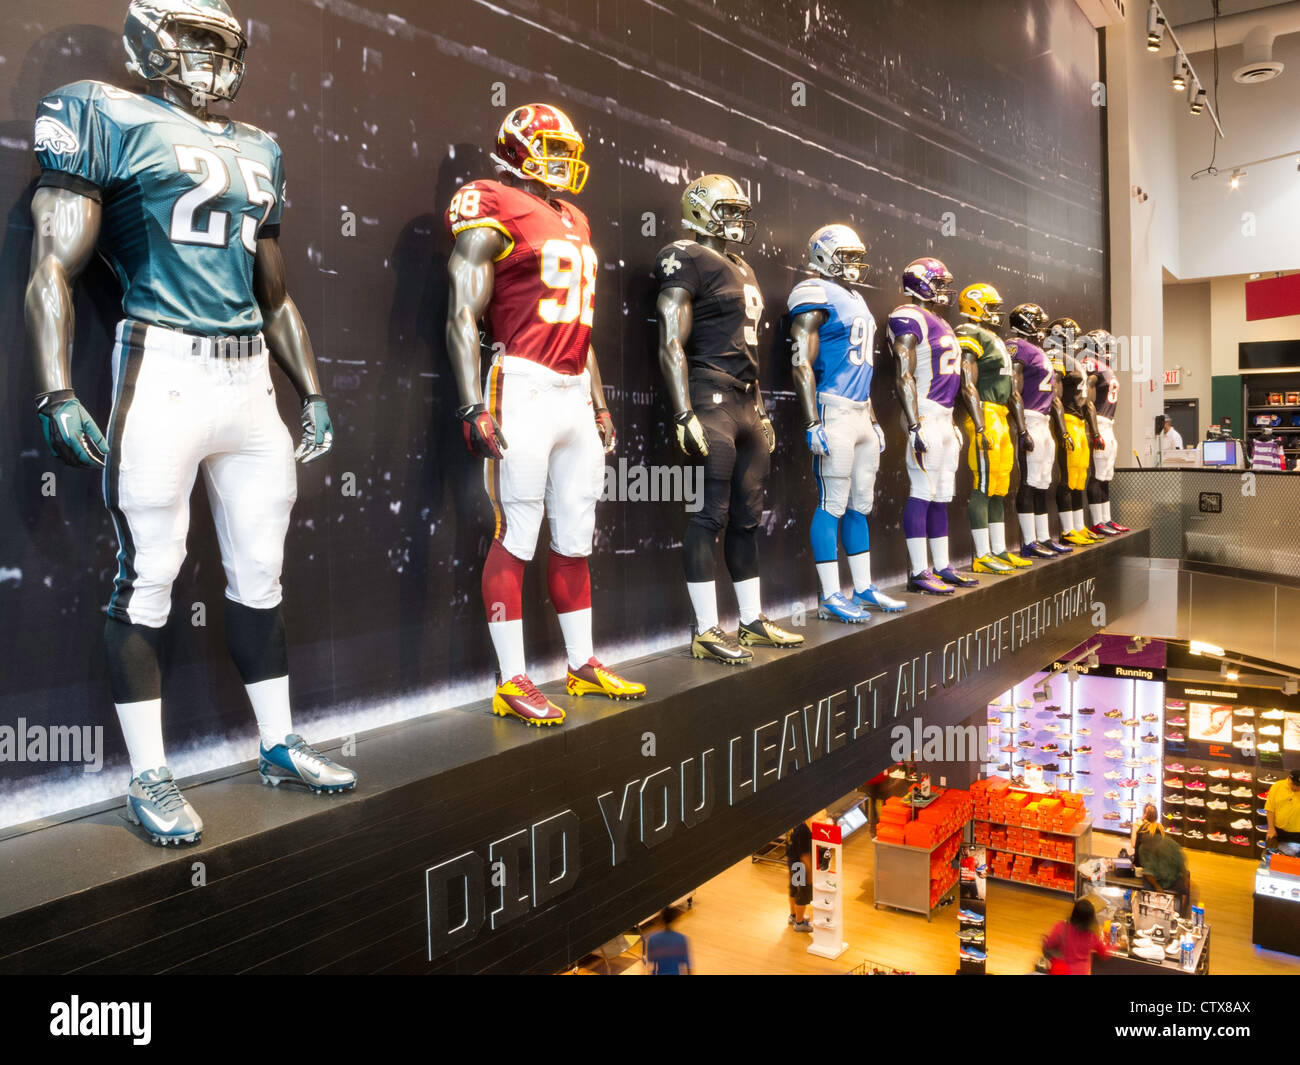 outlet store 7c380 4dc9a NFL Uniforms mannequins, Modell's Sporting Goods Store ...